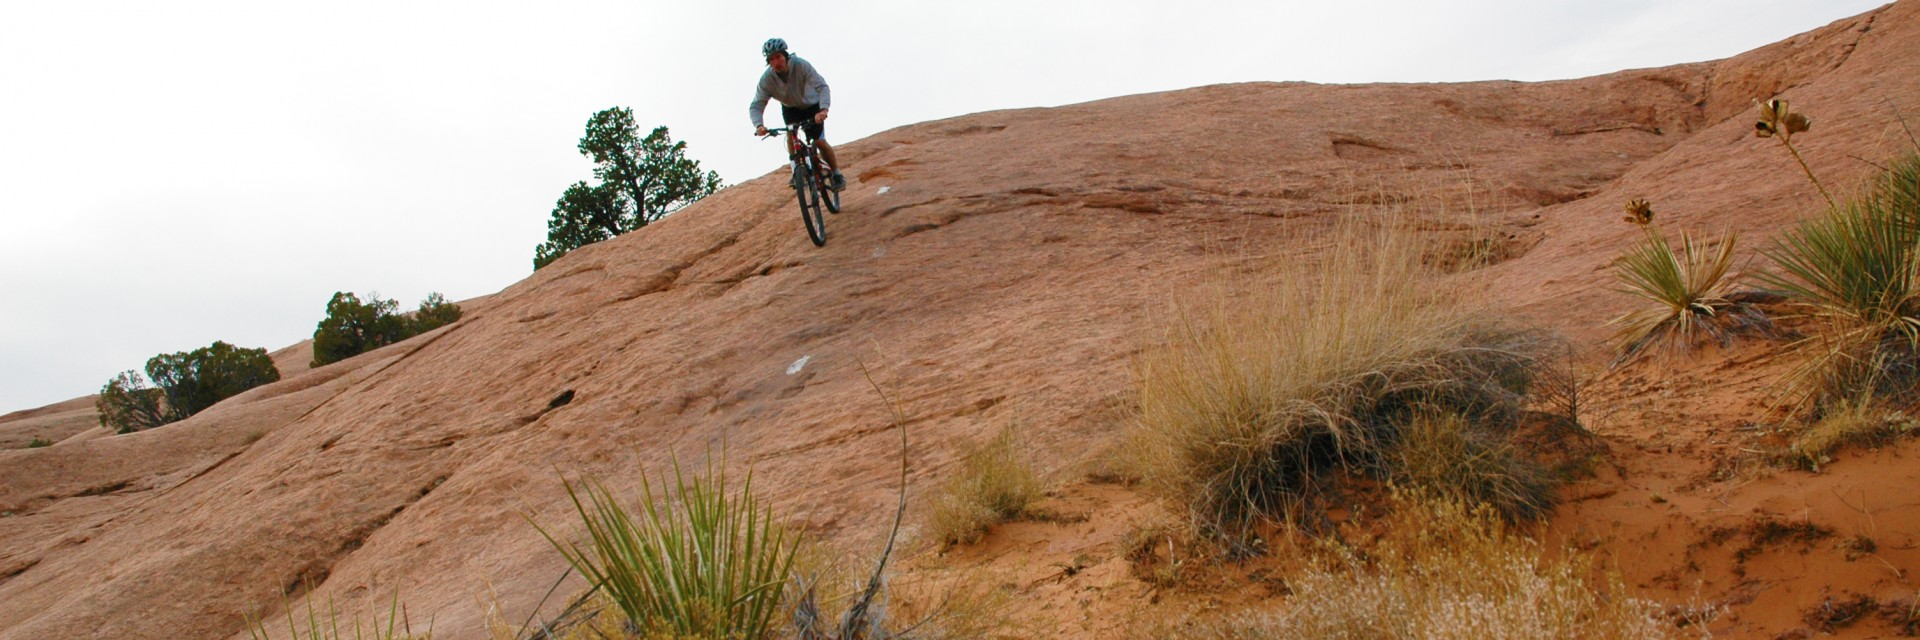 Sending it on Slickrock Trail, Moab UT